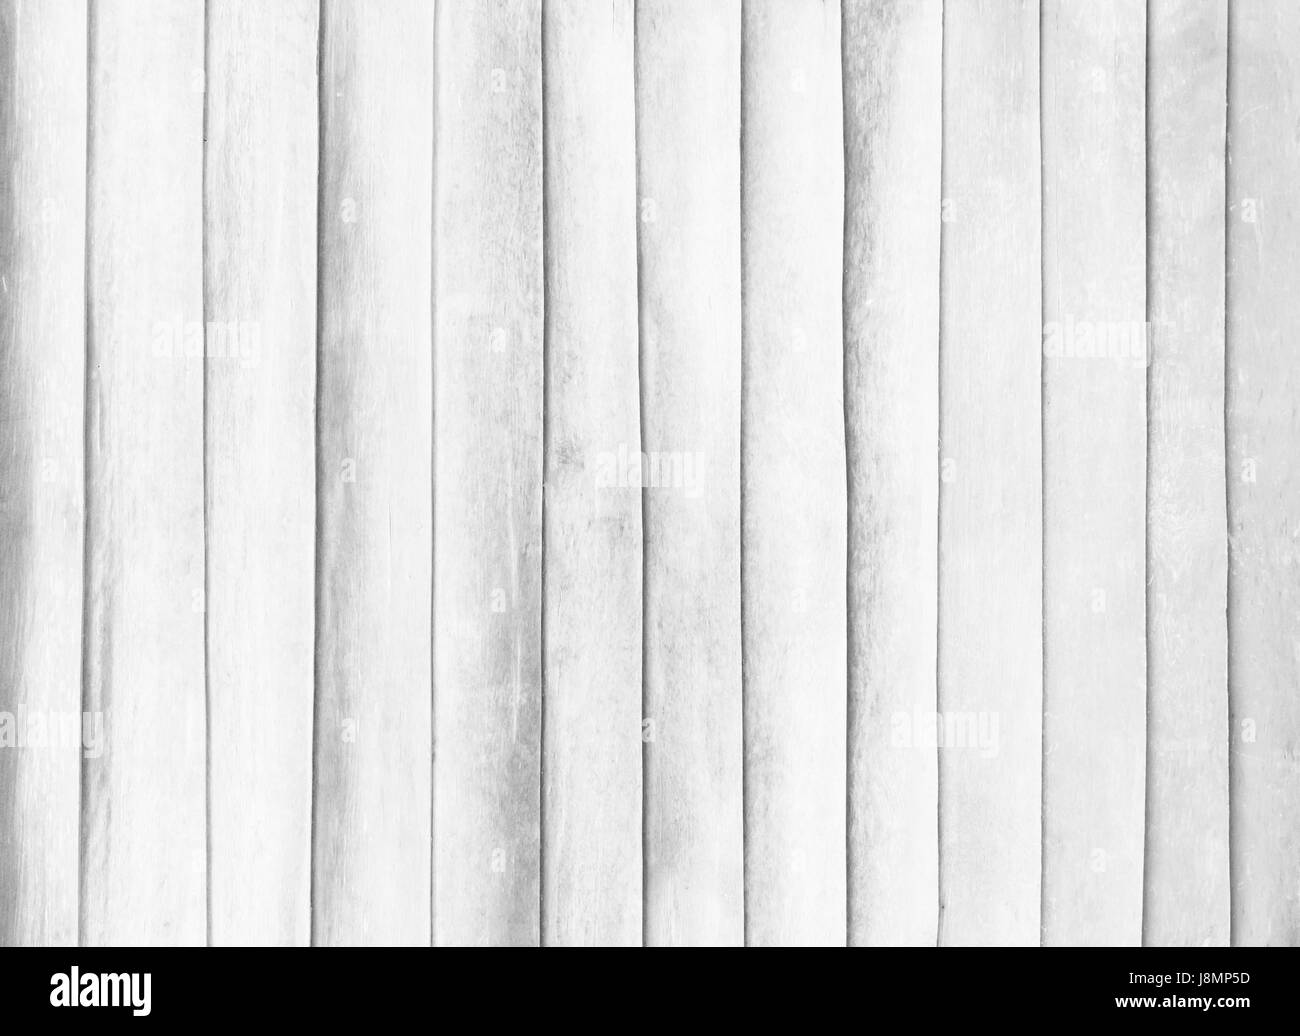 White wooden table texture - Abstract Surface White Wood Table Texture Background Close Up Of Dark Rustic Wall Made Of